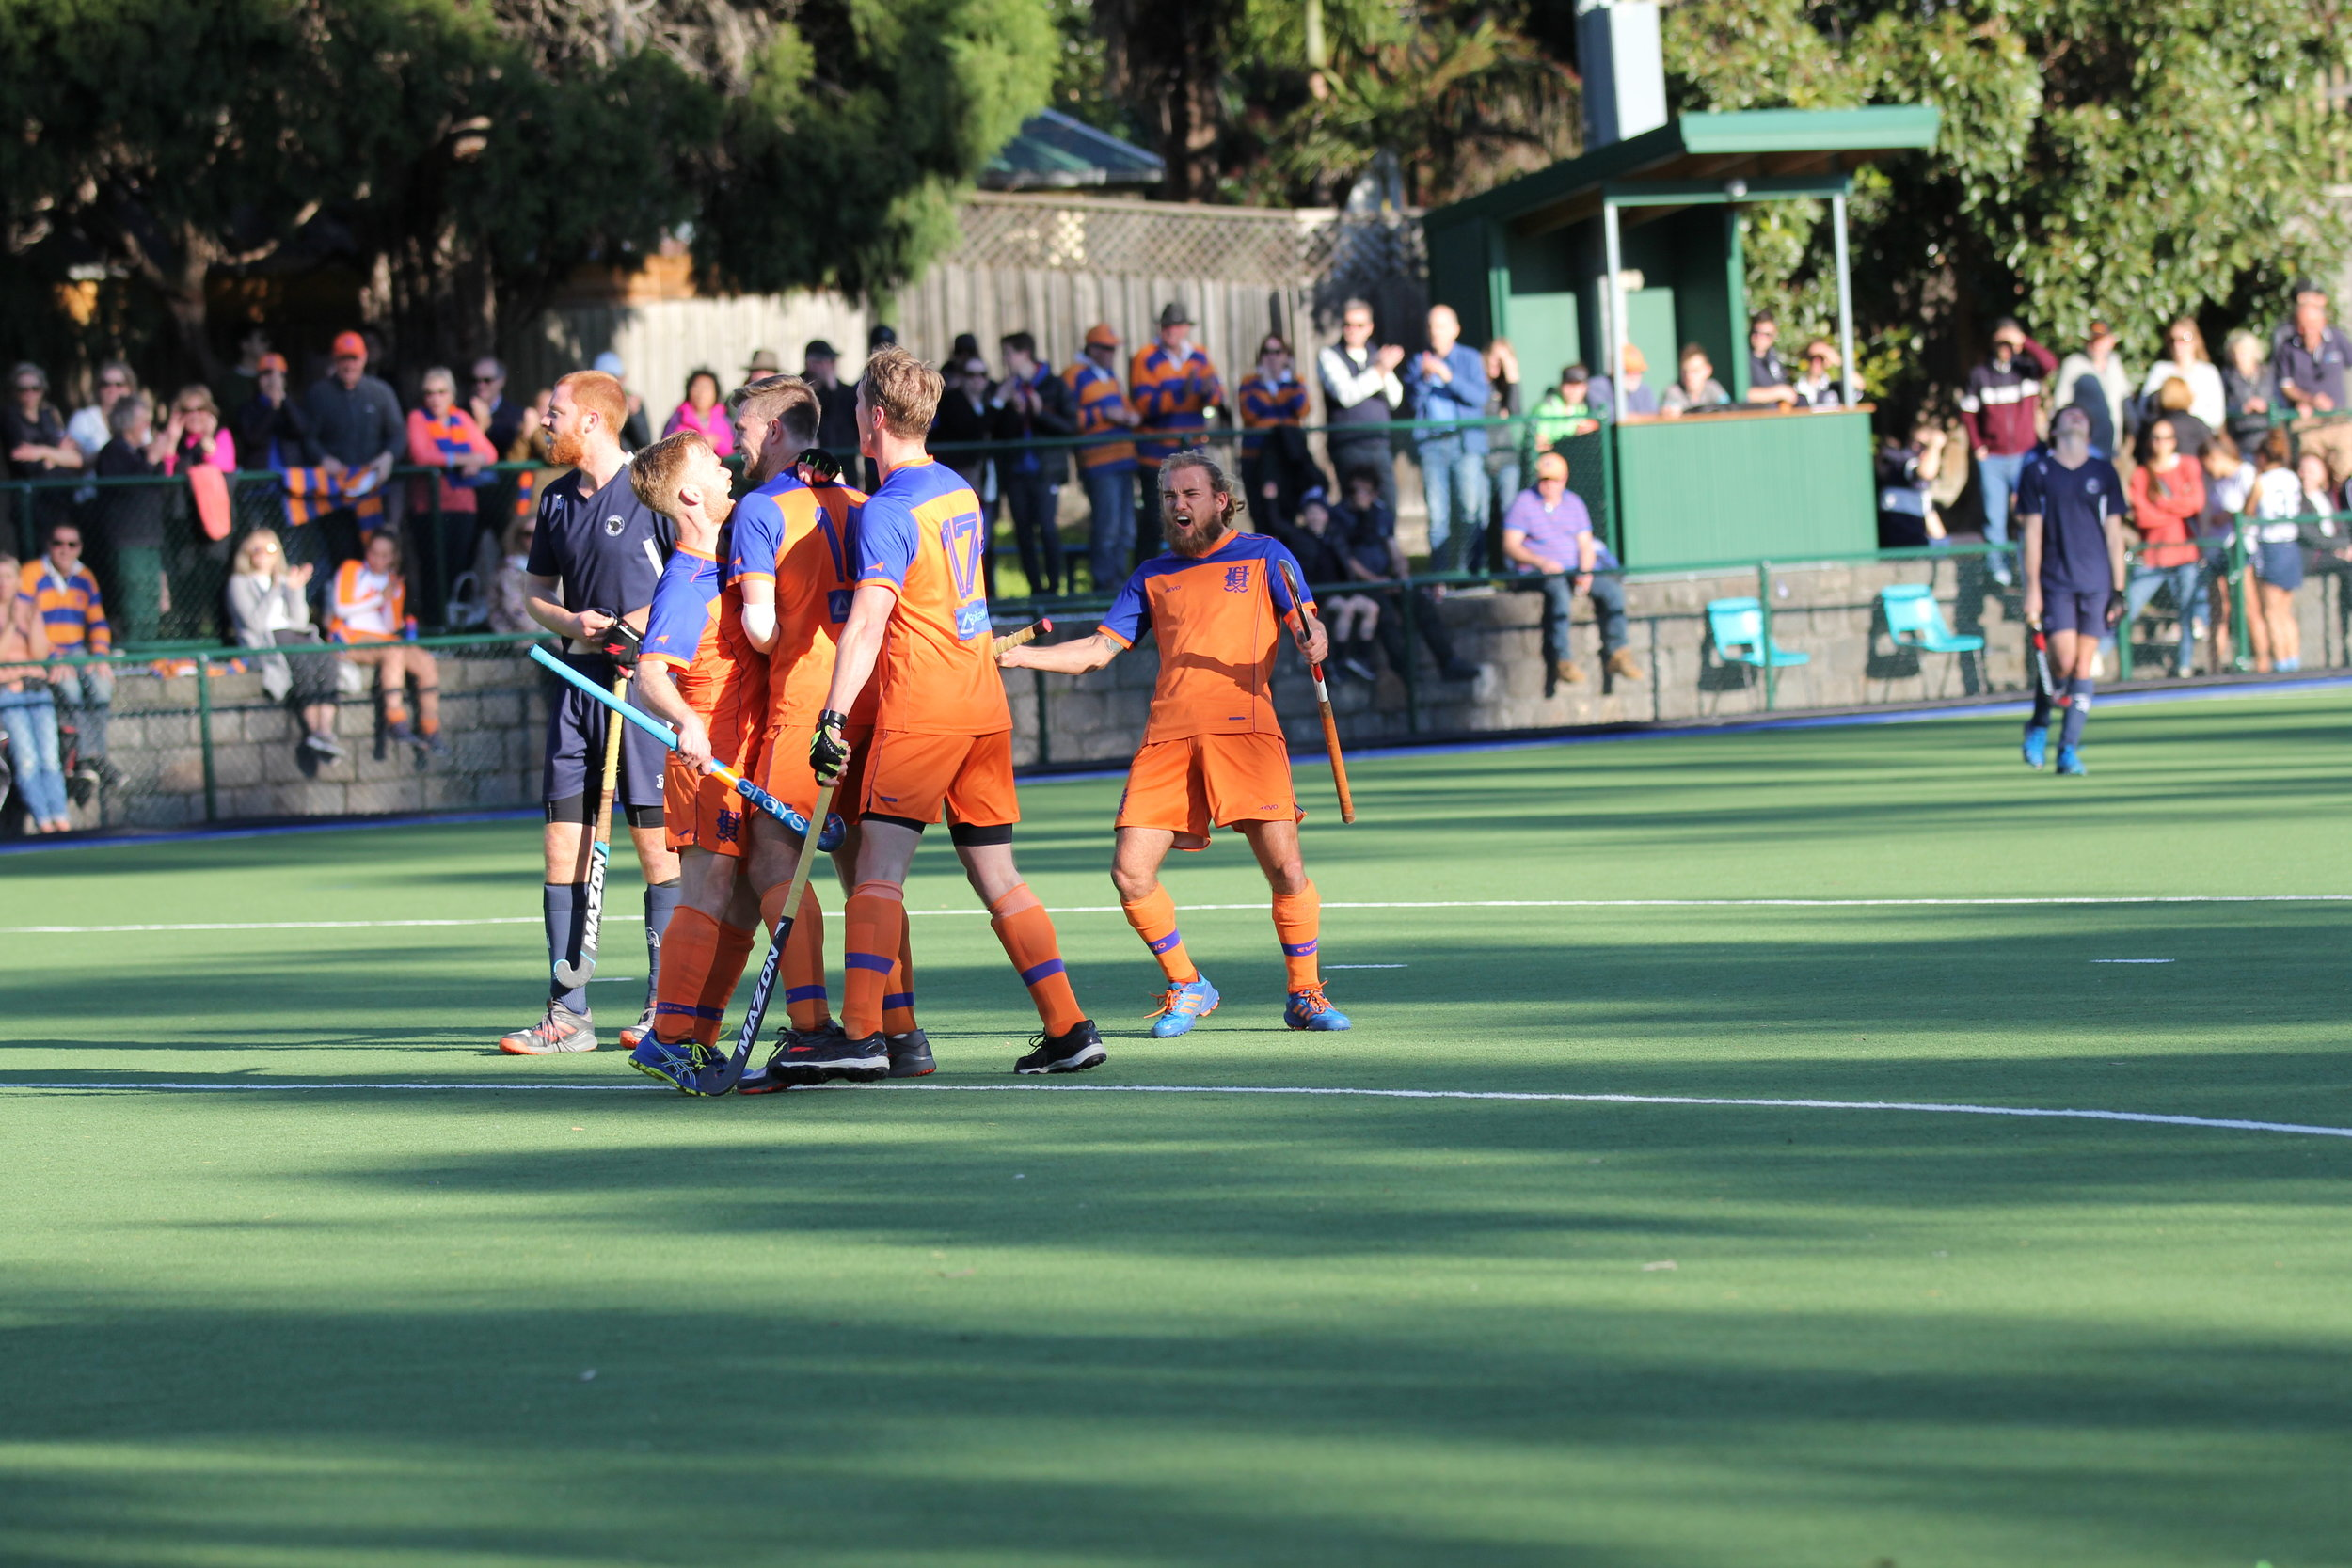 A decisive victory for Camberwell's MPL finding some exciting form at the start of a tough but exciting finals series - Hamish Prior